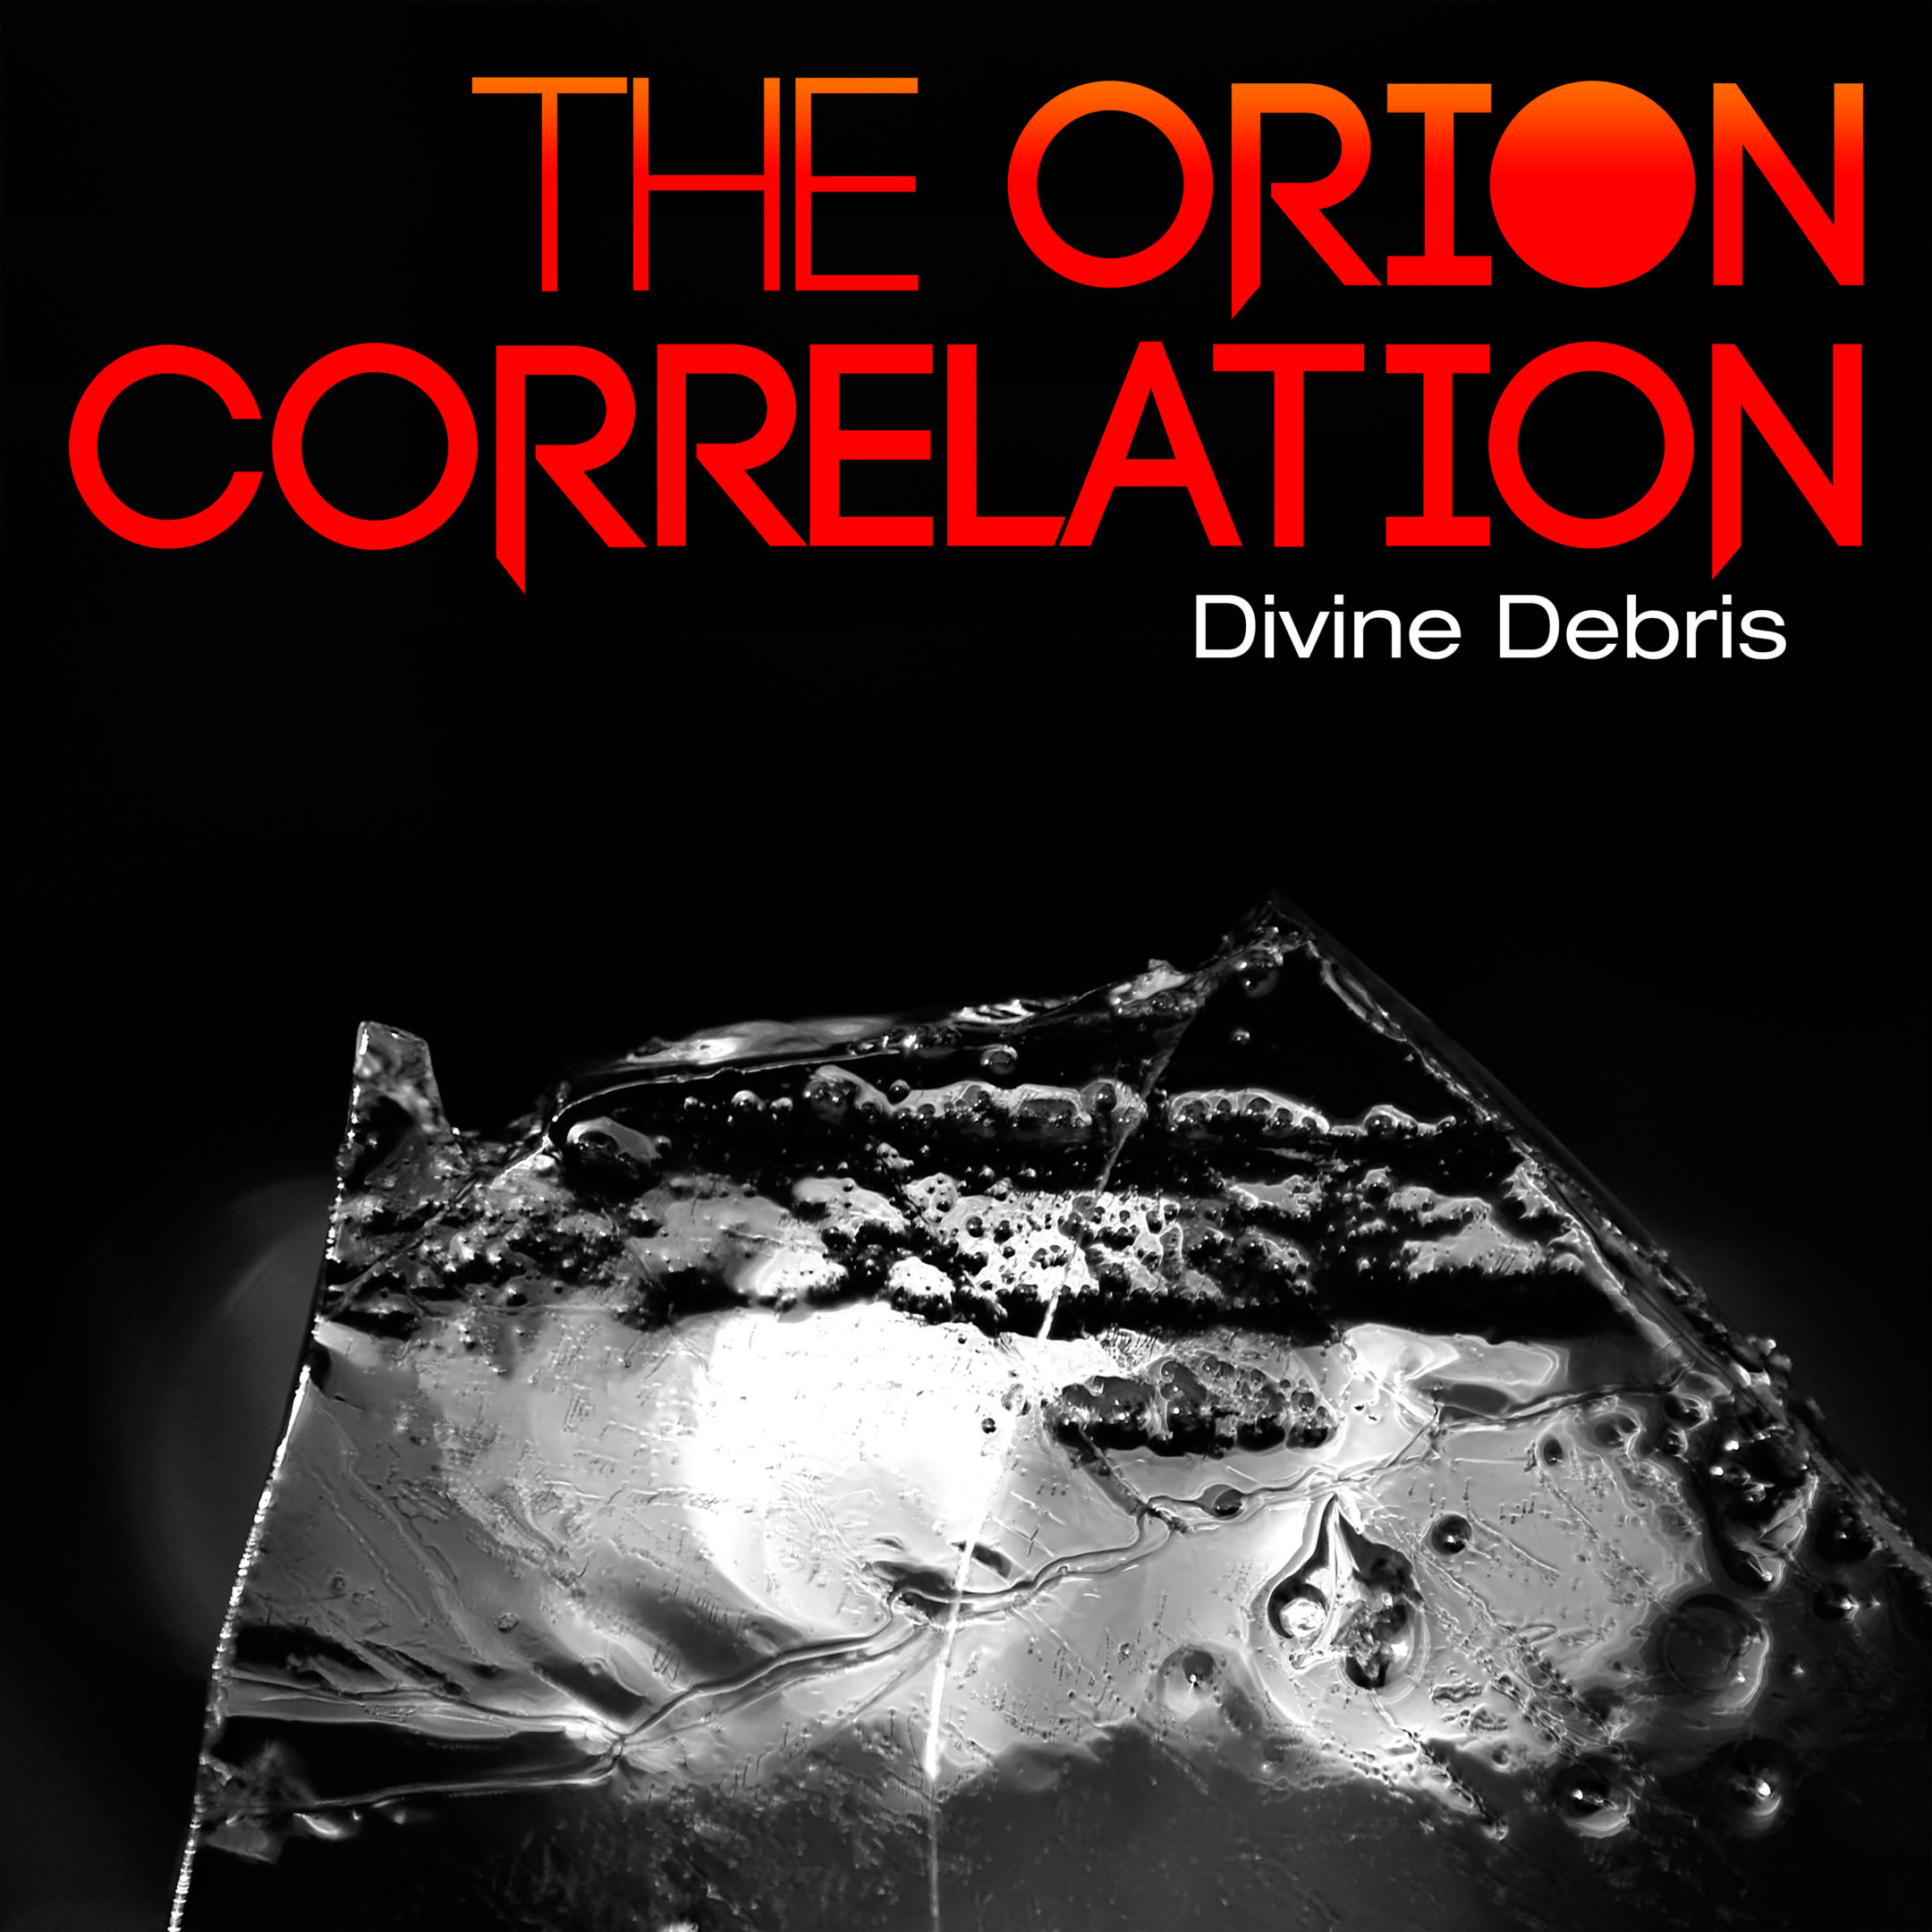 The Orion Correlation - Divine Debris (Artwork)